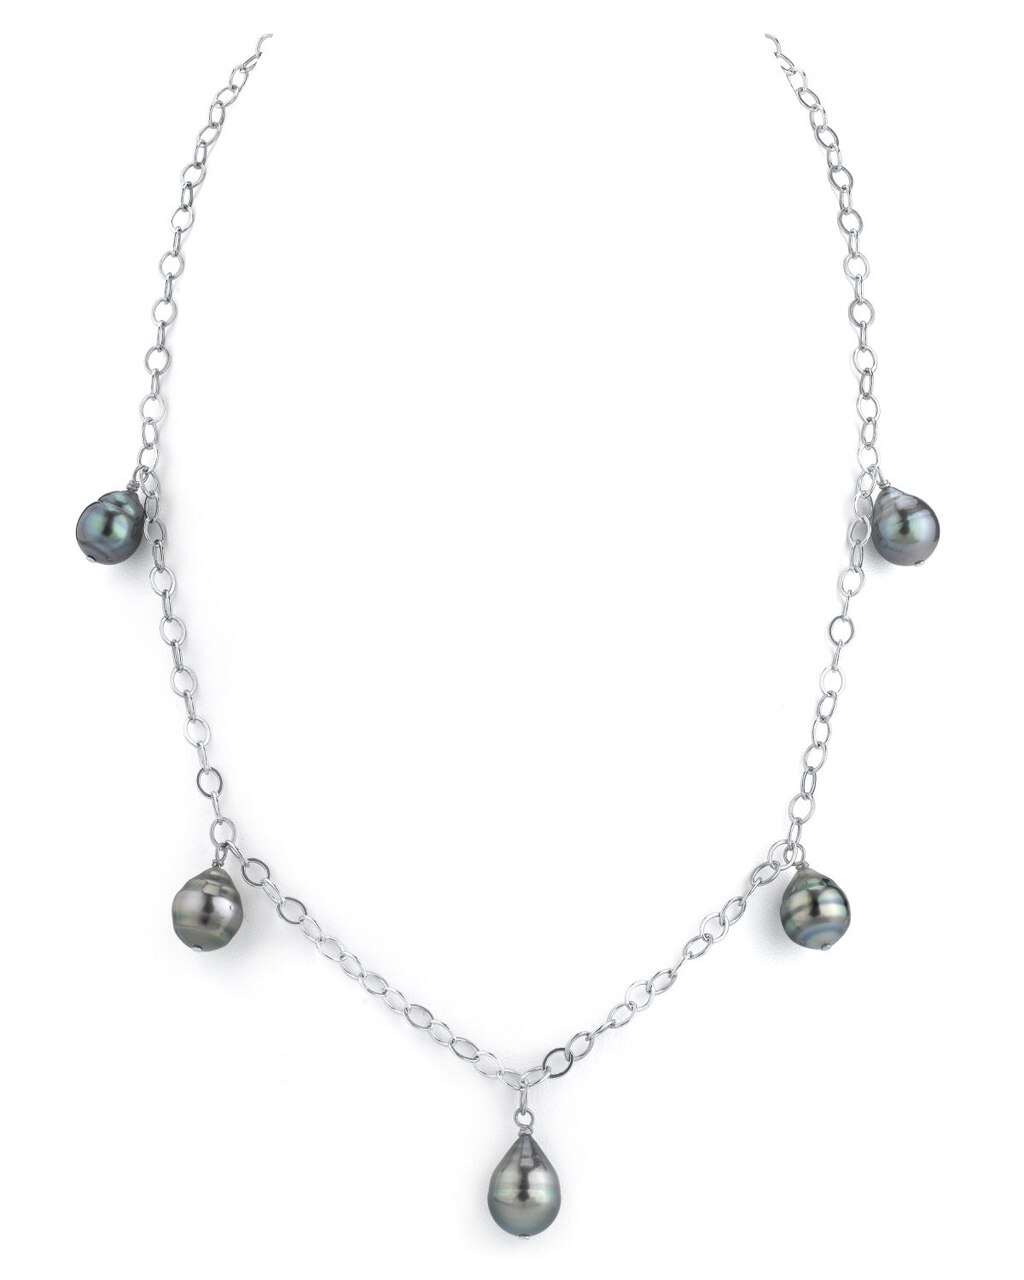 This exquisite necklace features 9.0-10.0mm Tahitian South Sea pearls, handpicked for their radiant luster